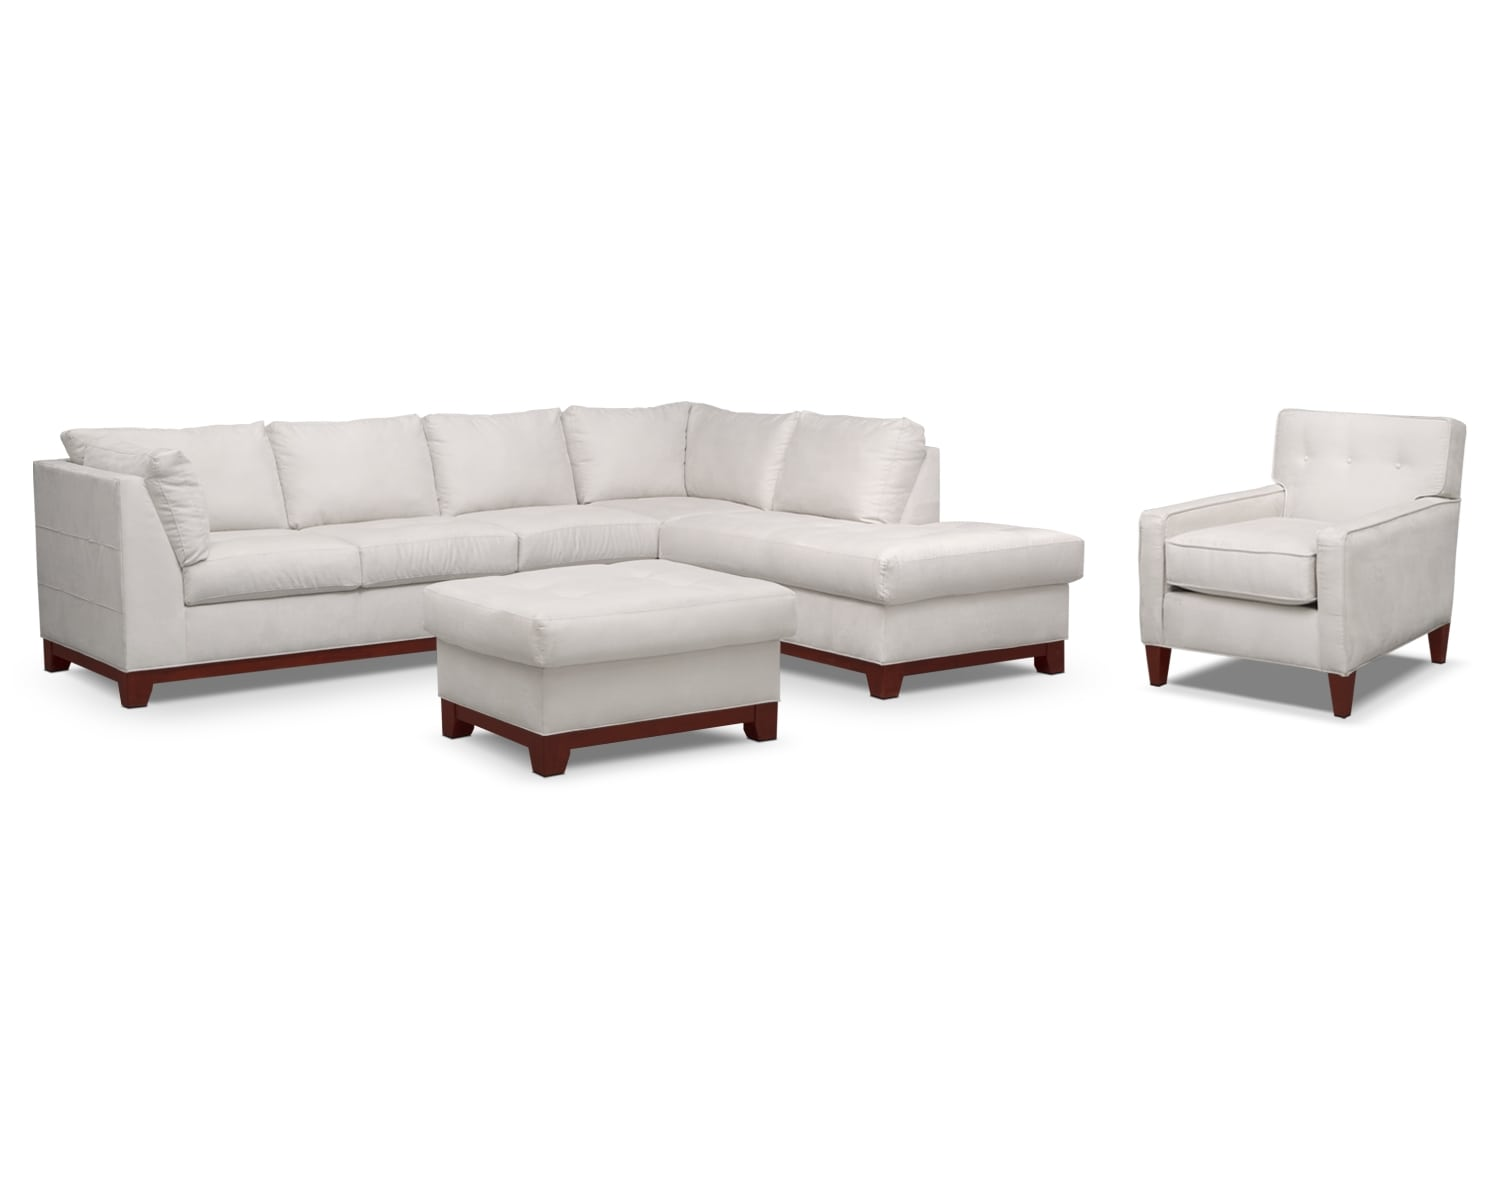 The Soho Sectional Collection - Cement